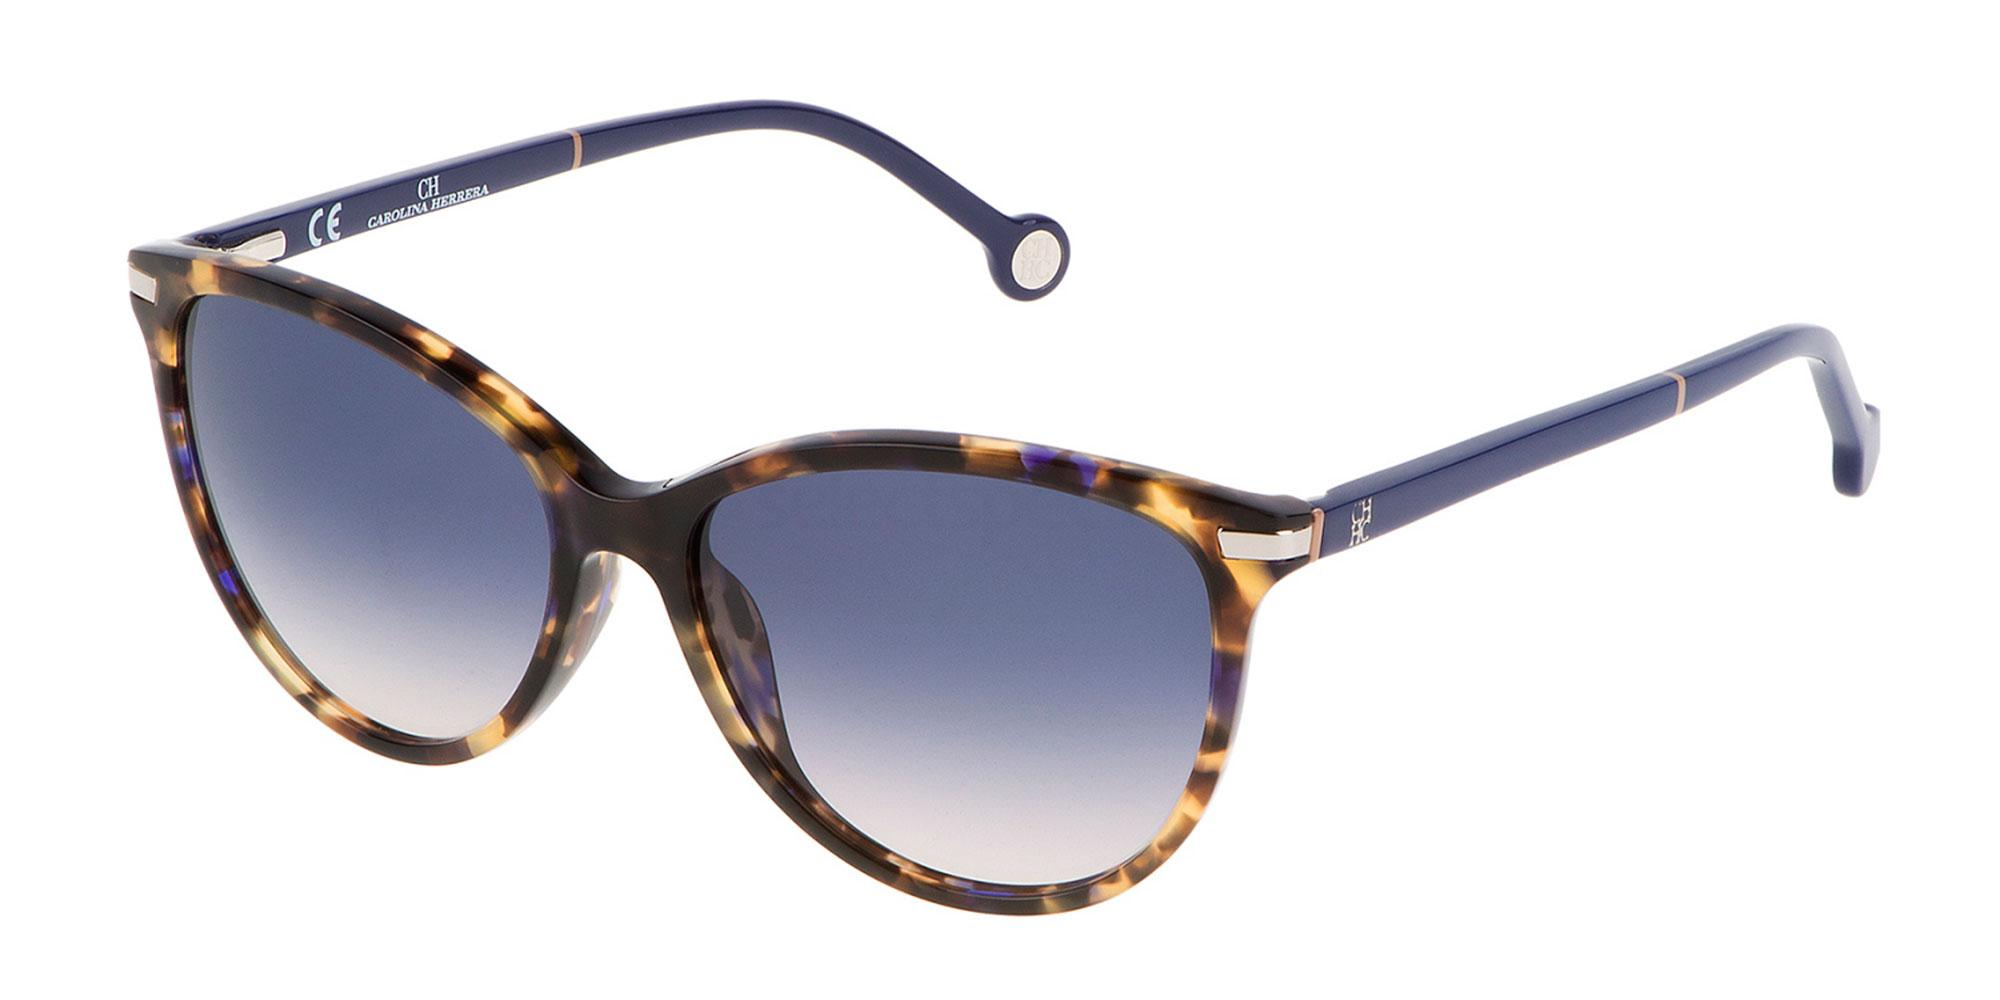 0744 SHE651V Sunglasses, CH Carolina Herrera